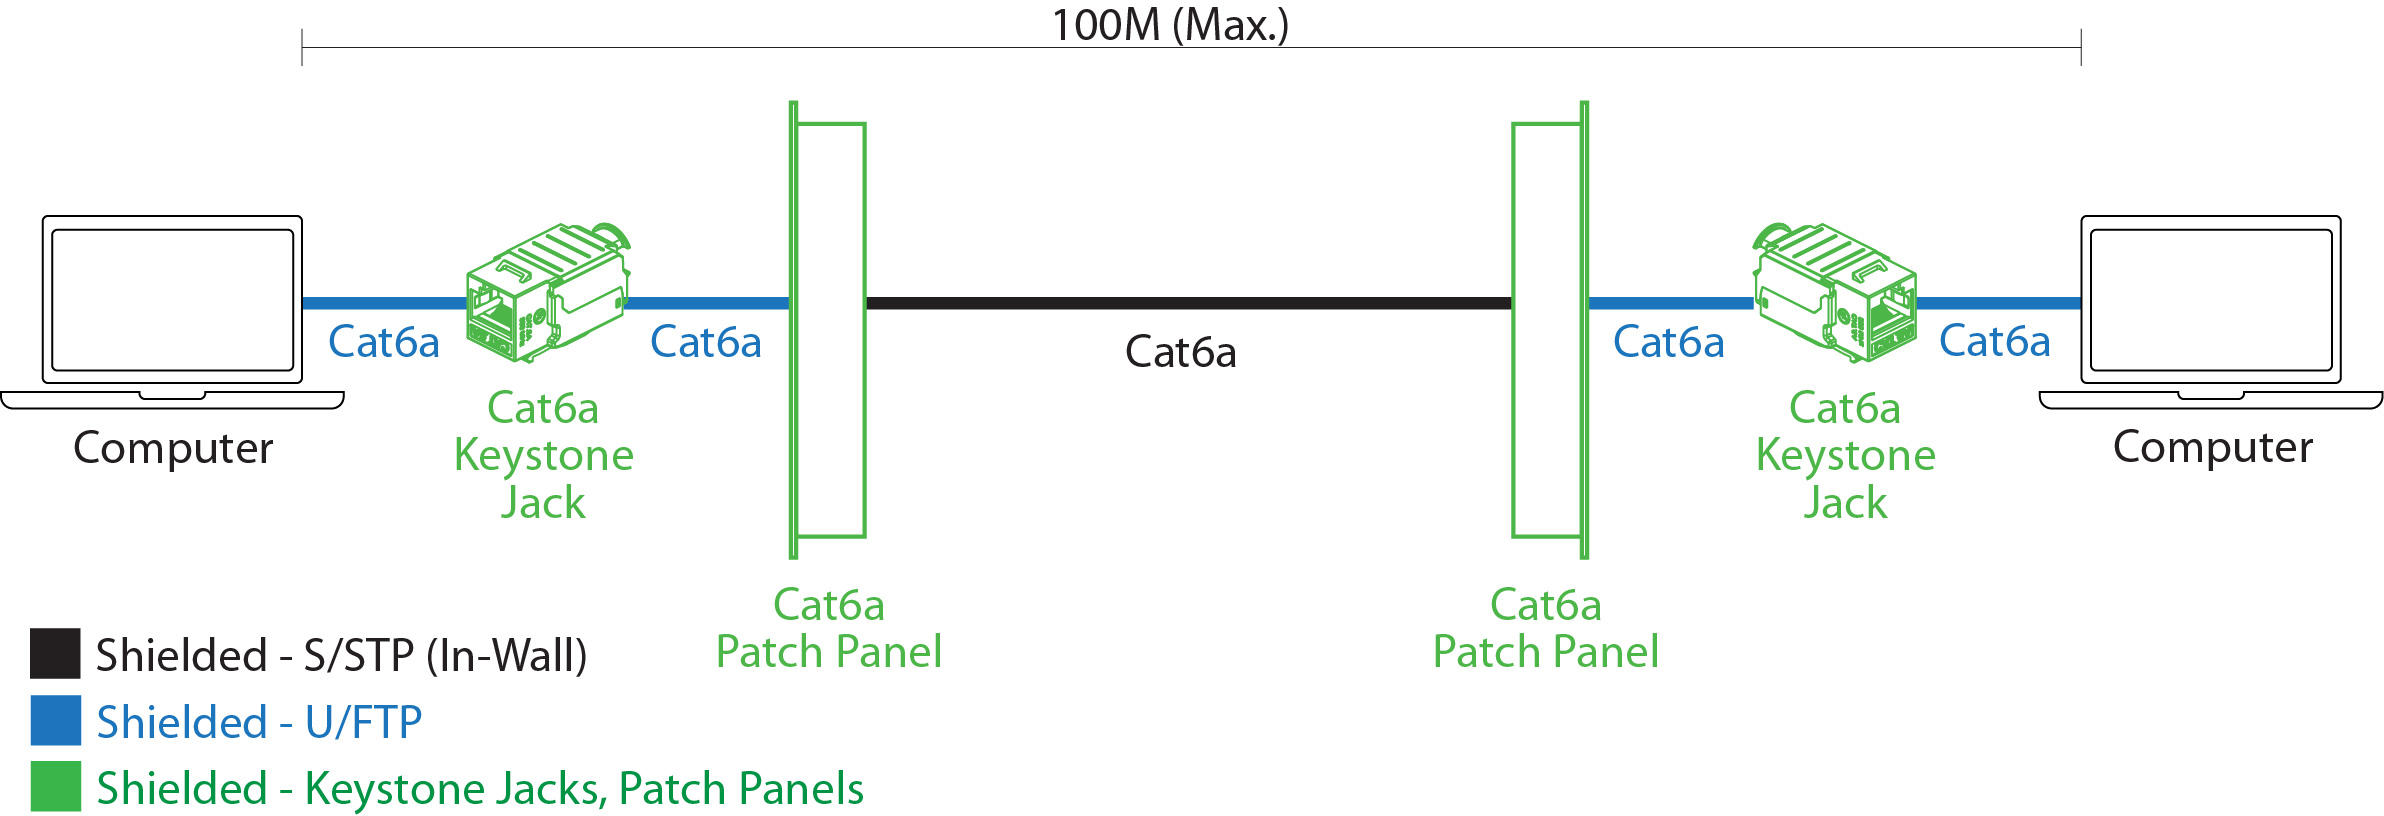 cat6a diagram   13 wiring diagram images